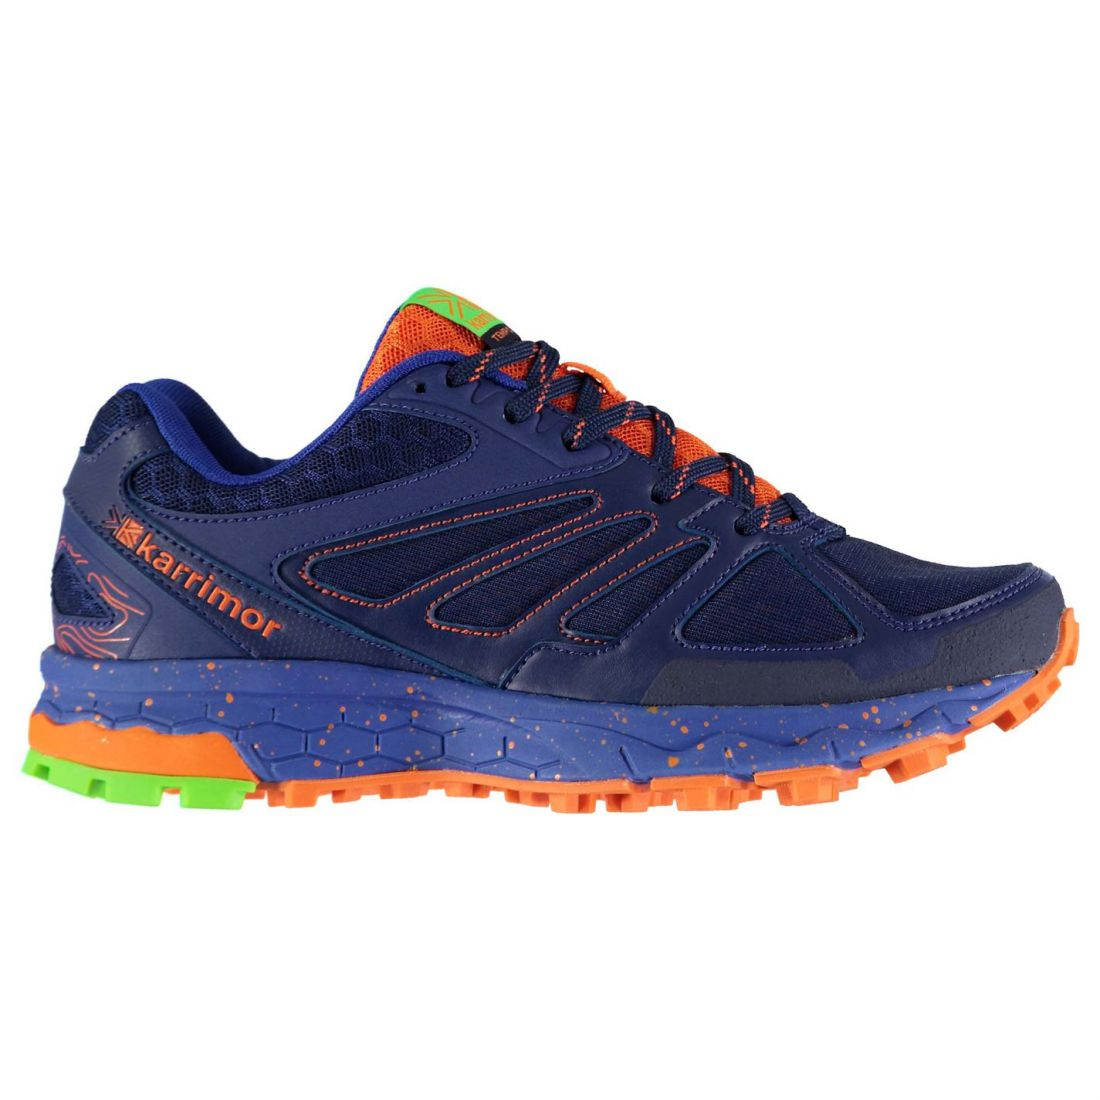 Karrimor Tempo 5 Boys Trail Running Shoes Runners Laces Fastened Ventilated Mesh